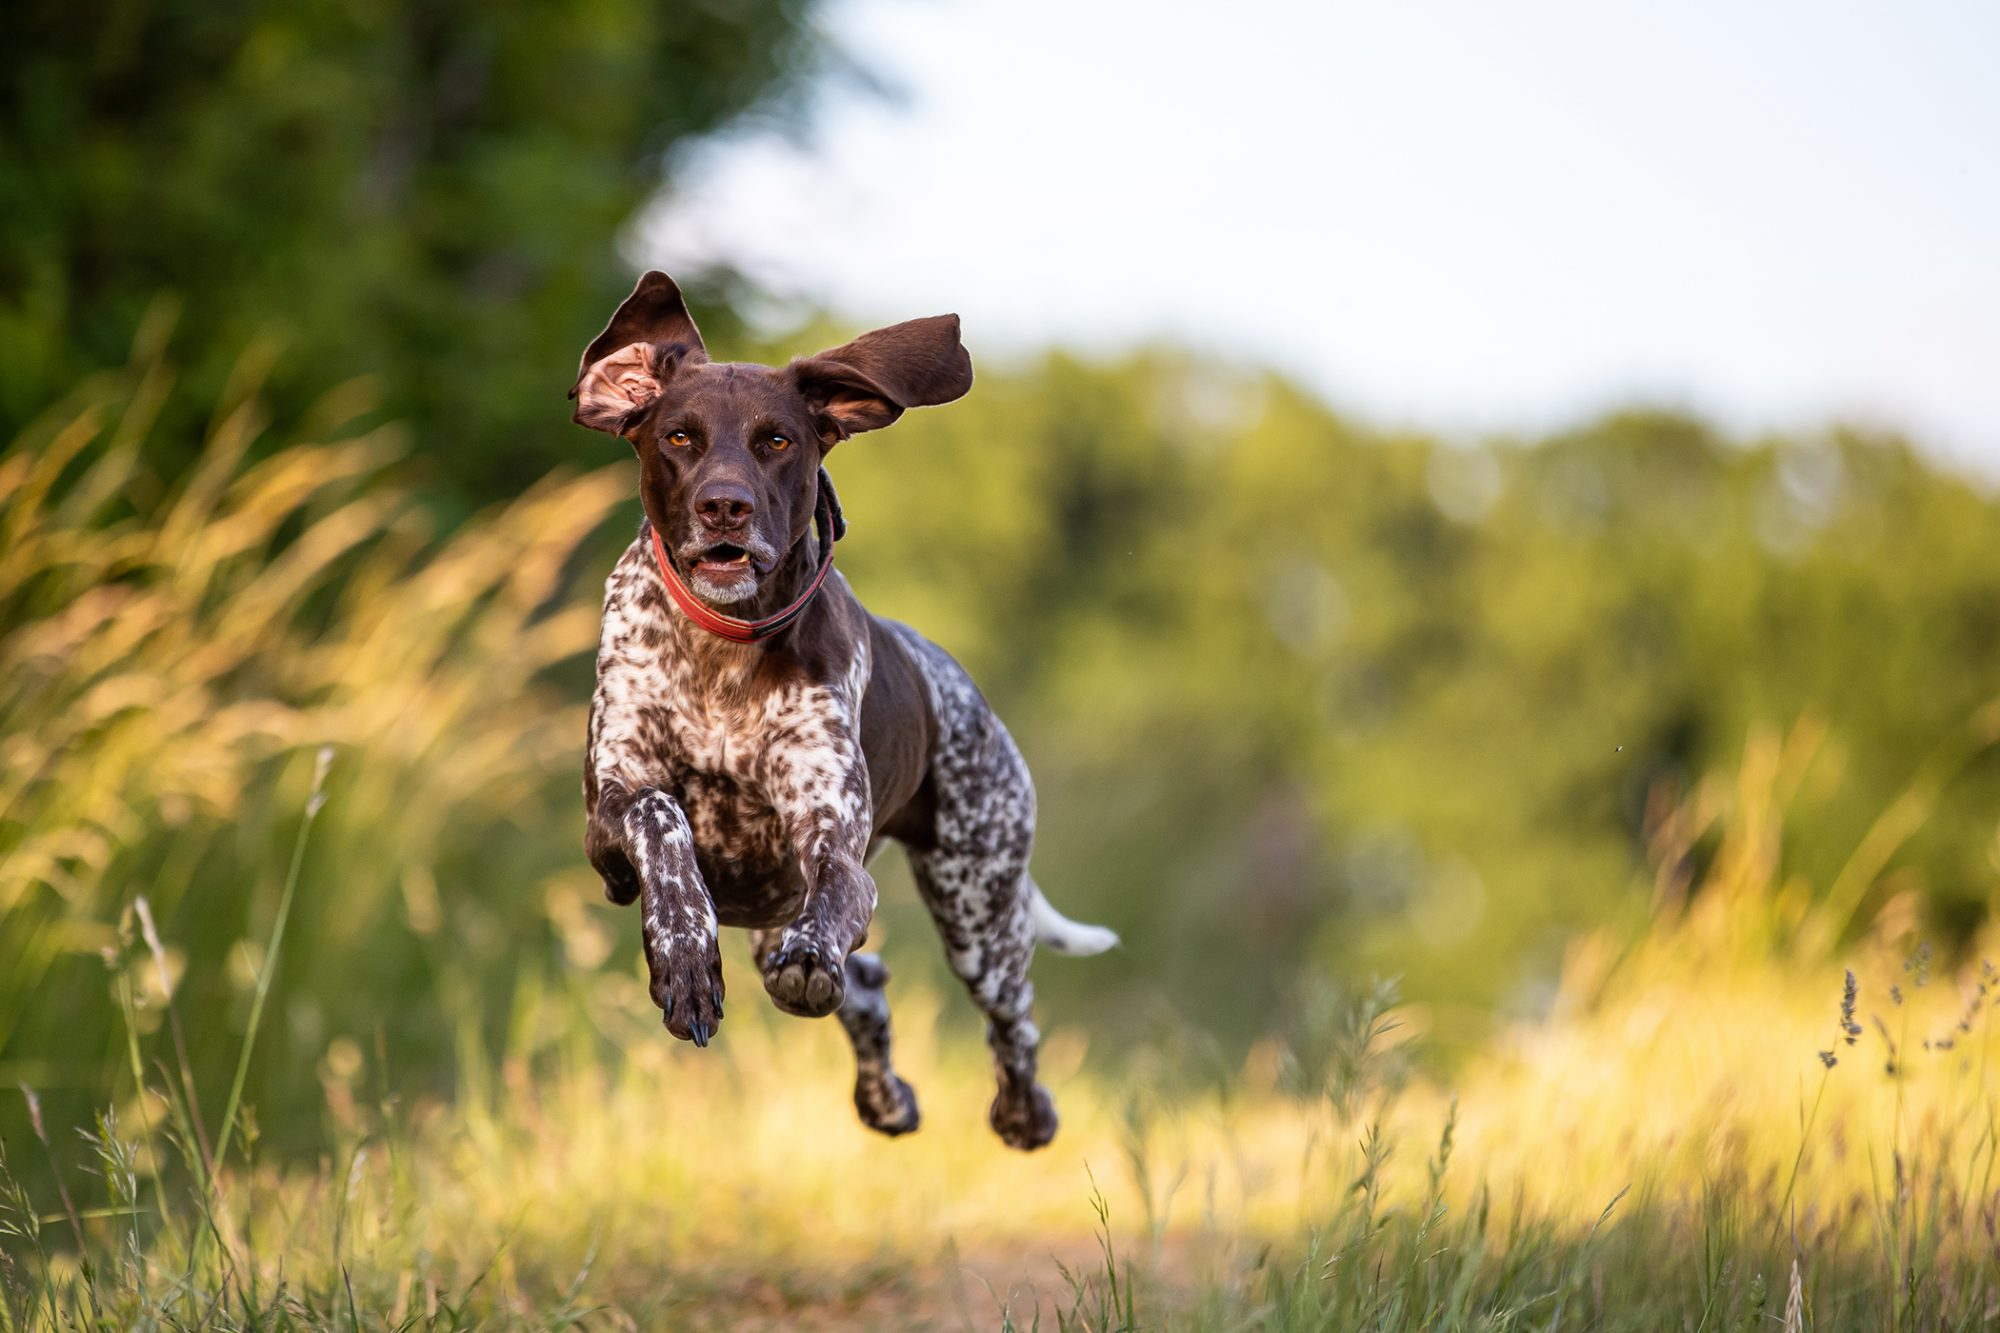 Chocolate spotted pointer bounds through field